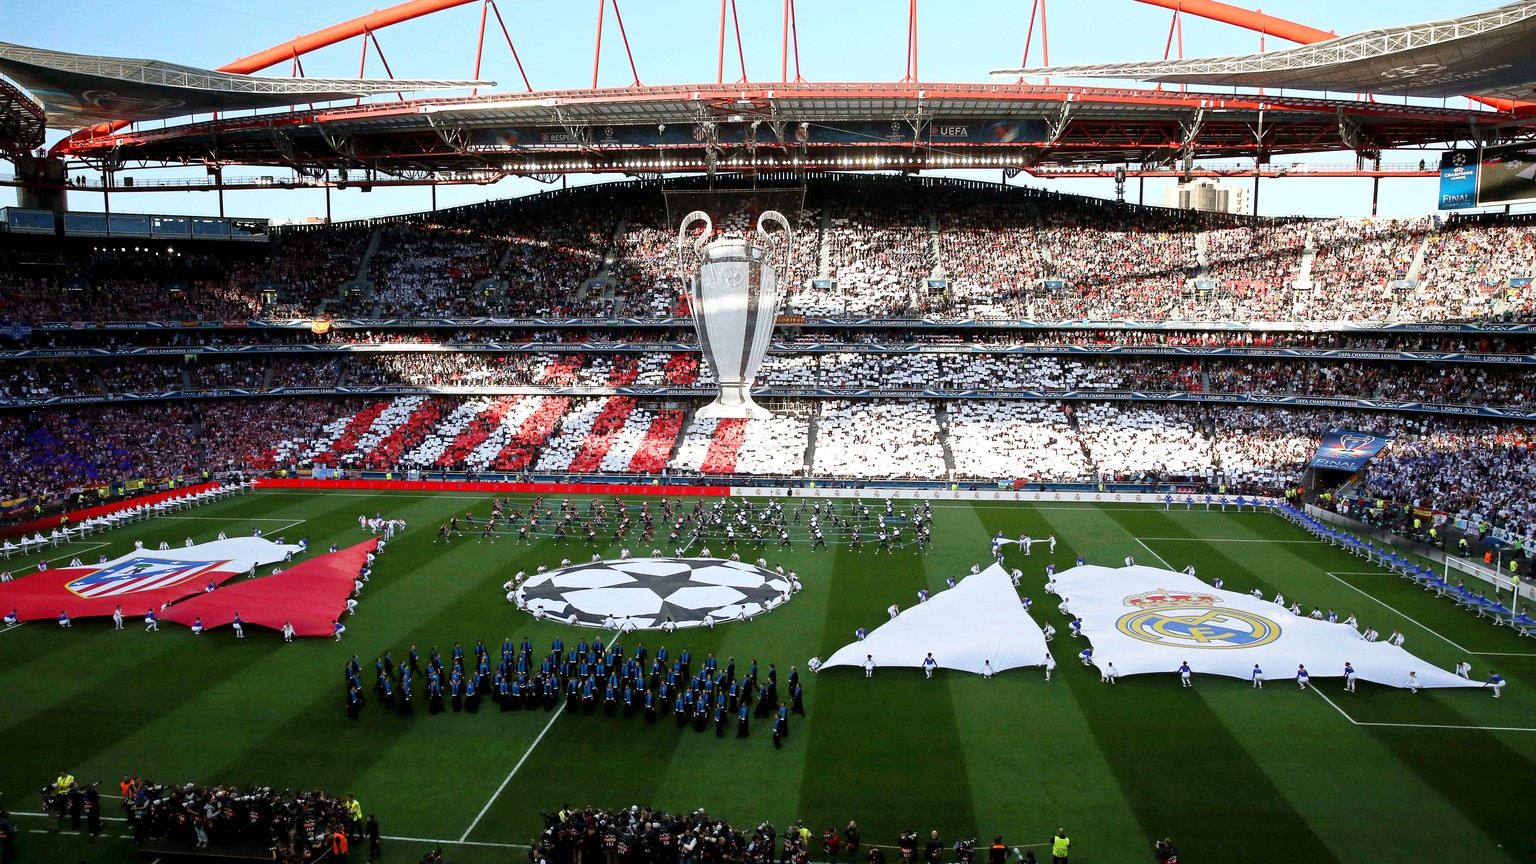 epa08487673 (FILE) - General view of the opening ceremony prior to the UEFA Champions League final between Atletico Madrid and Real Madrid at Luz Stadium in Lisbon, Portugal, 24 May 2014 (re-issued on 16 June 2020). Lisbon's Estadio da Luz is expected to host the 2020 UEFA Champions League final in a decision by the UEFA executive committee set to be announced on 17 June 2020.  EPA/ANDRE KOSTERS *** Local Caption *** 51384305